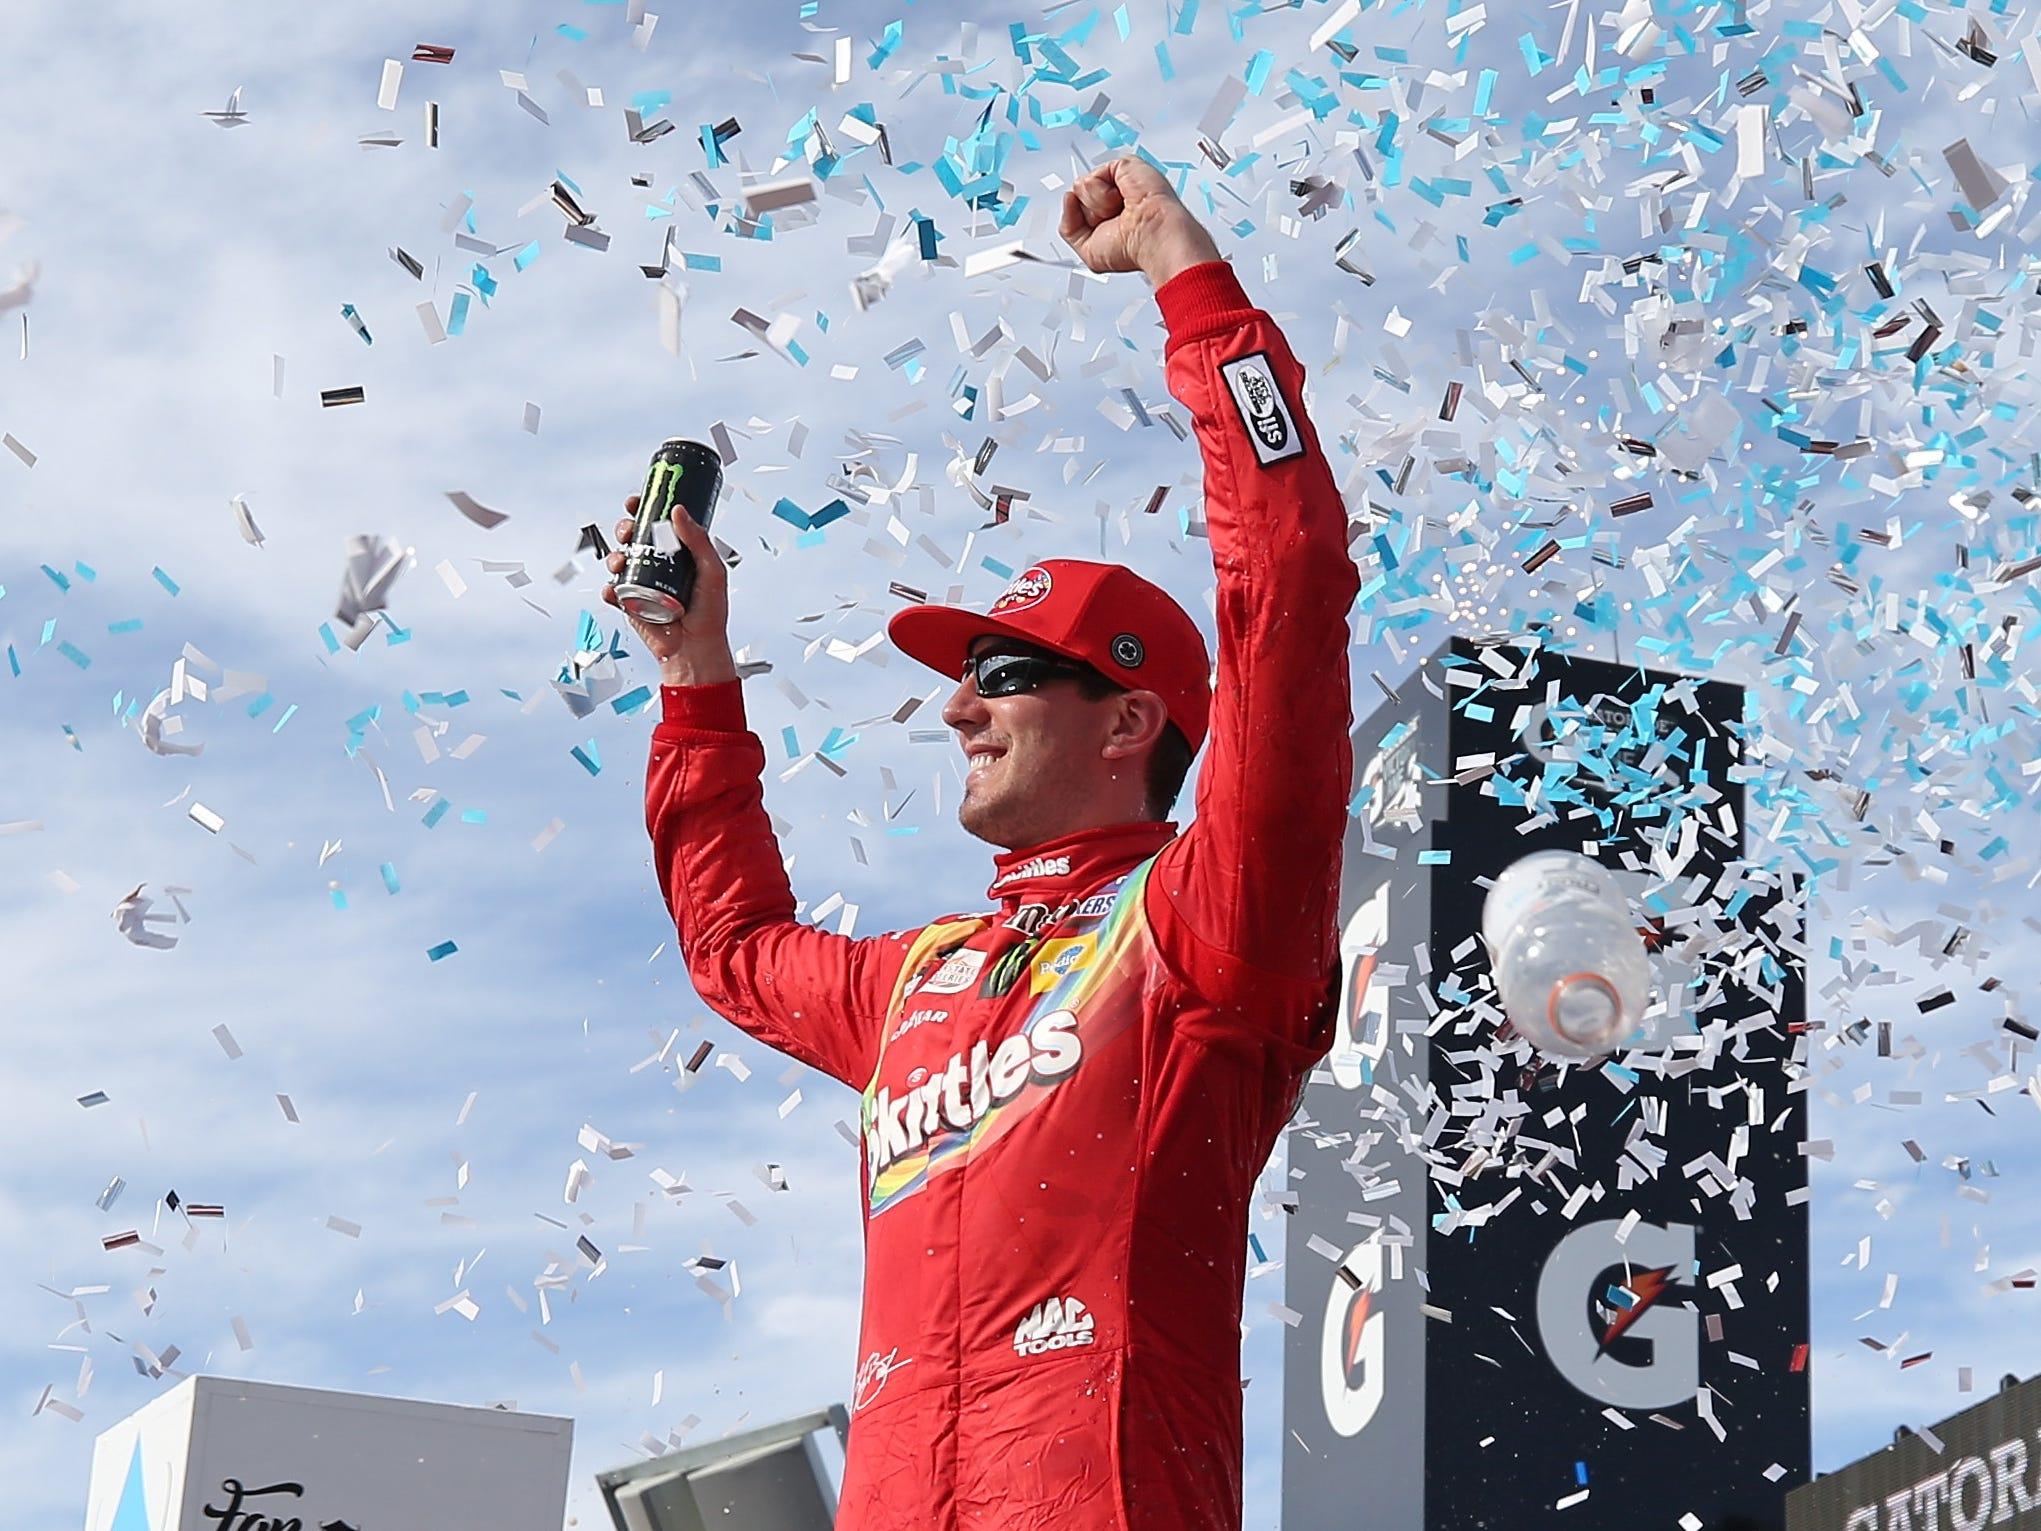 AVONDALE, AZ - MARCH 10:  Kyle Busch, driver of the #18 Skittles Toyota, celebrates in Victory Lane after winning the Monster Energy NASCAR Cup Series TicketGuardian 500 at ISM Raceway on March 10, 2019 in Avondale, Arizona.  (Photo by Matt Sullivan/Getty Images)